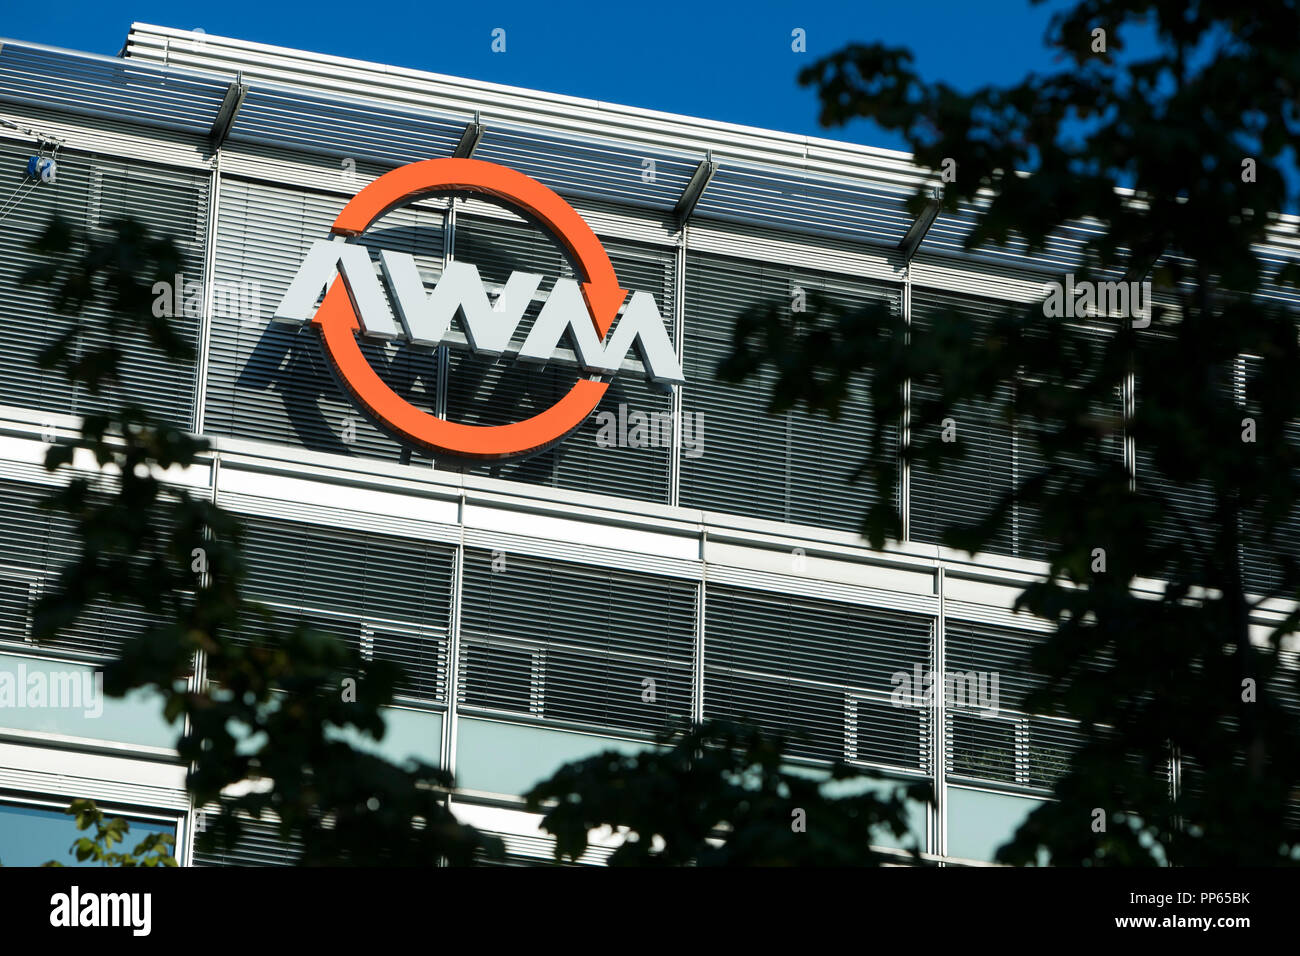 A logo sign outside of the headquarters of The Abfallwirtschaftsbetrieb München (AWM) in Munich, Germany, on September 8, 2018. - Stock Image